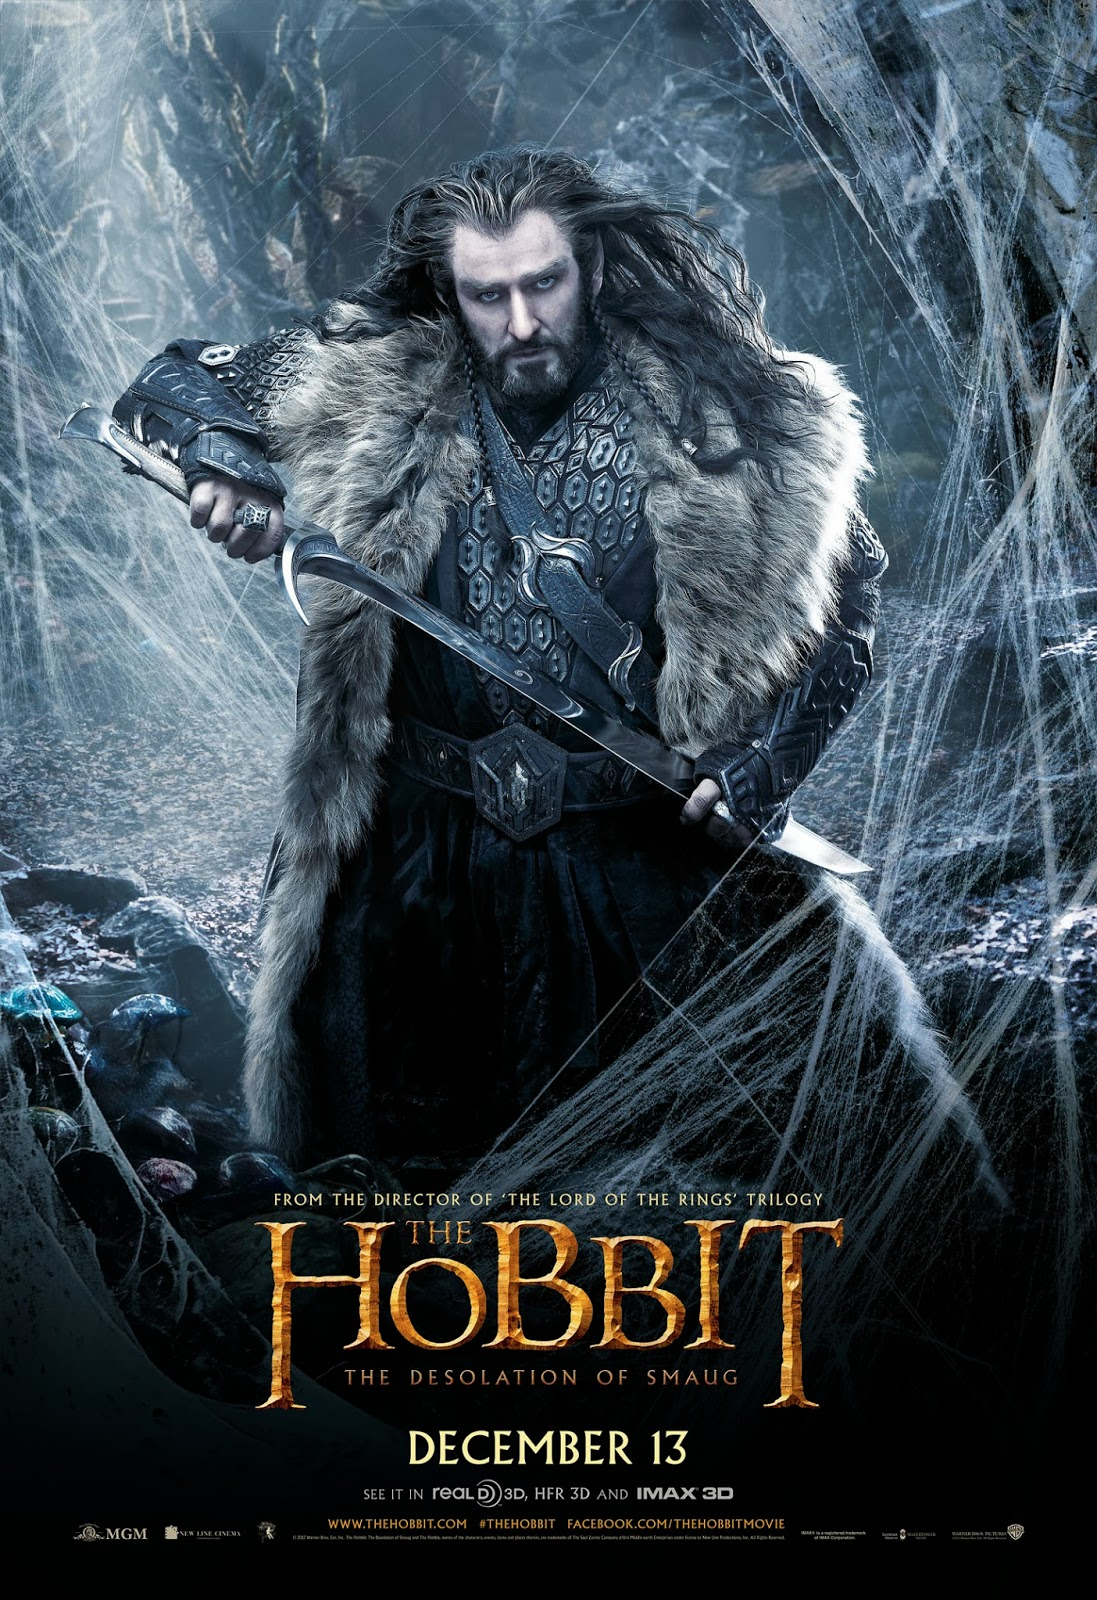 The Hobbit The Desolation Of Smaug HD Wallpaper Poster For iPhone 5 1097x1600